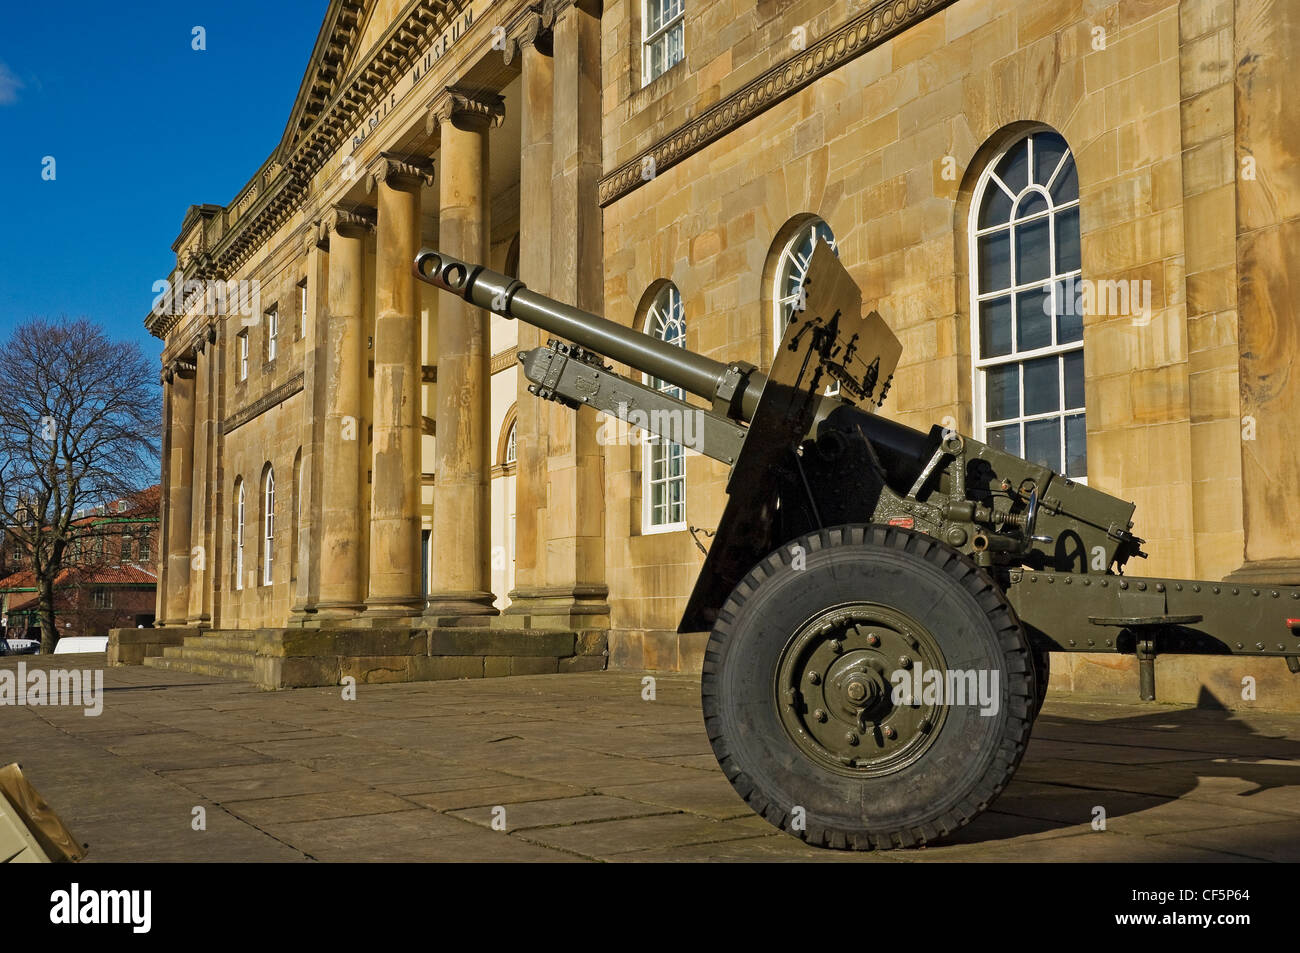 Field gun outside York Castle Museum, one of Britain's leading museums of everyday life. - Stock Image